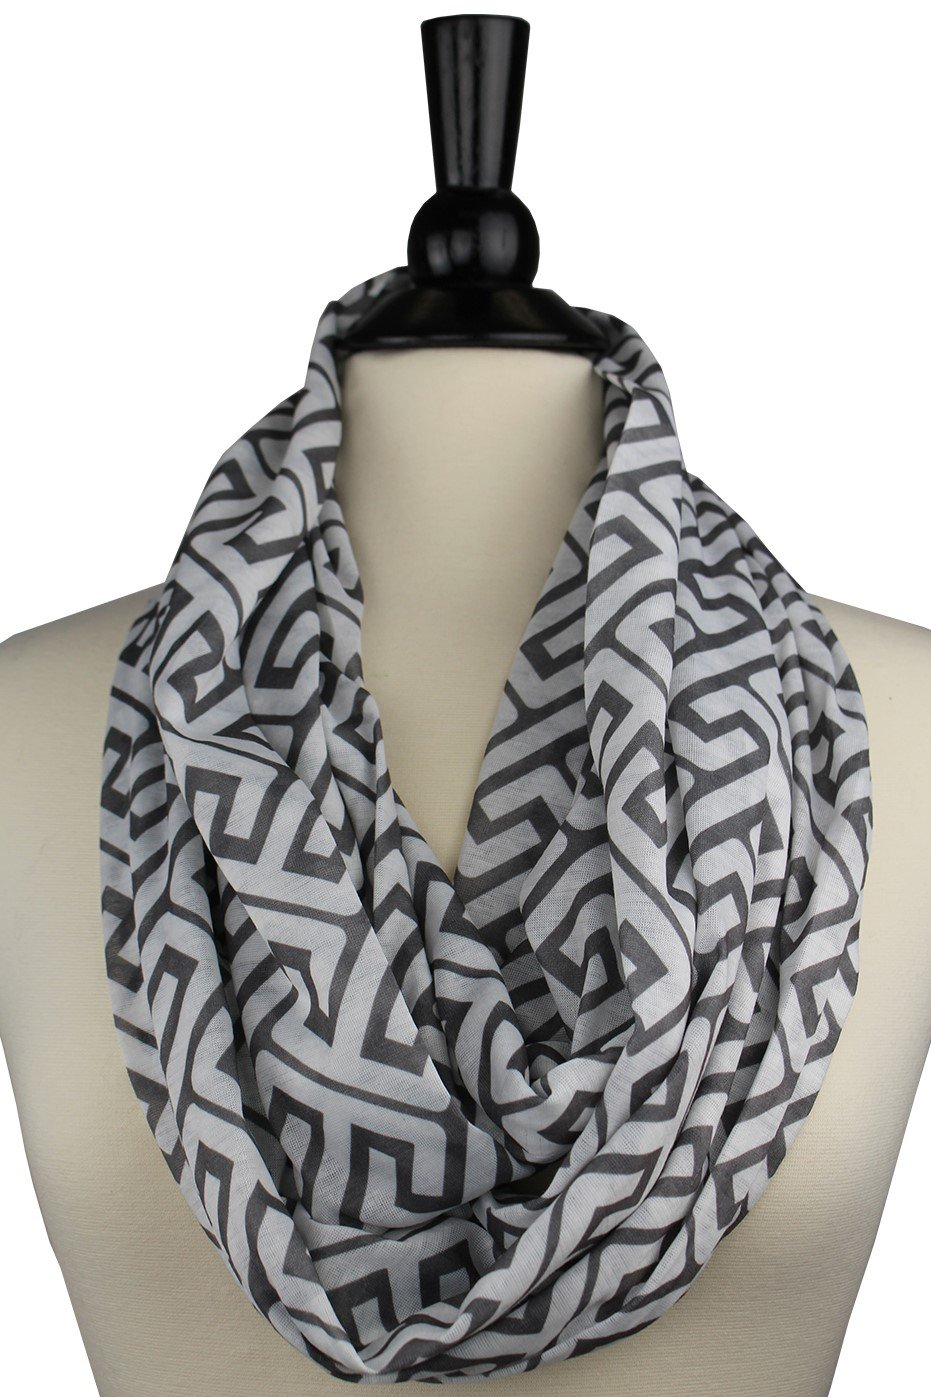 Women's Greek Key Pattern Infinity Scarf with Zipper Pocket - Pop Fashion Cyber-Monday-Sale-2017 Holiday-Deals Infinity Scarves (Navy) PFYQ1154-NV